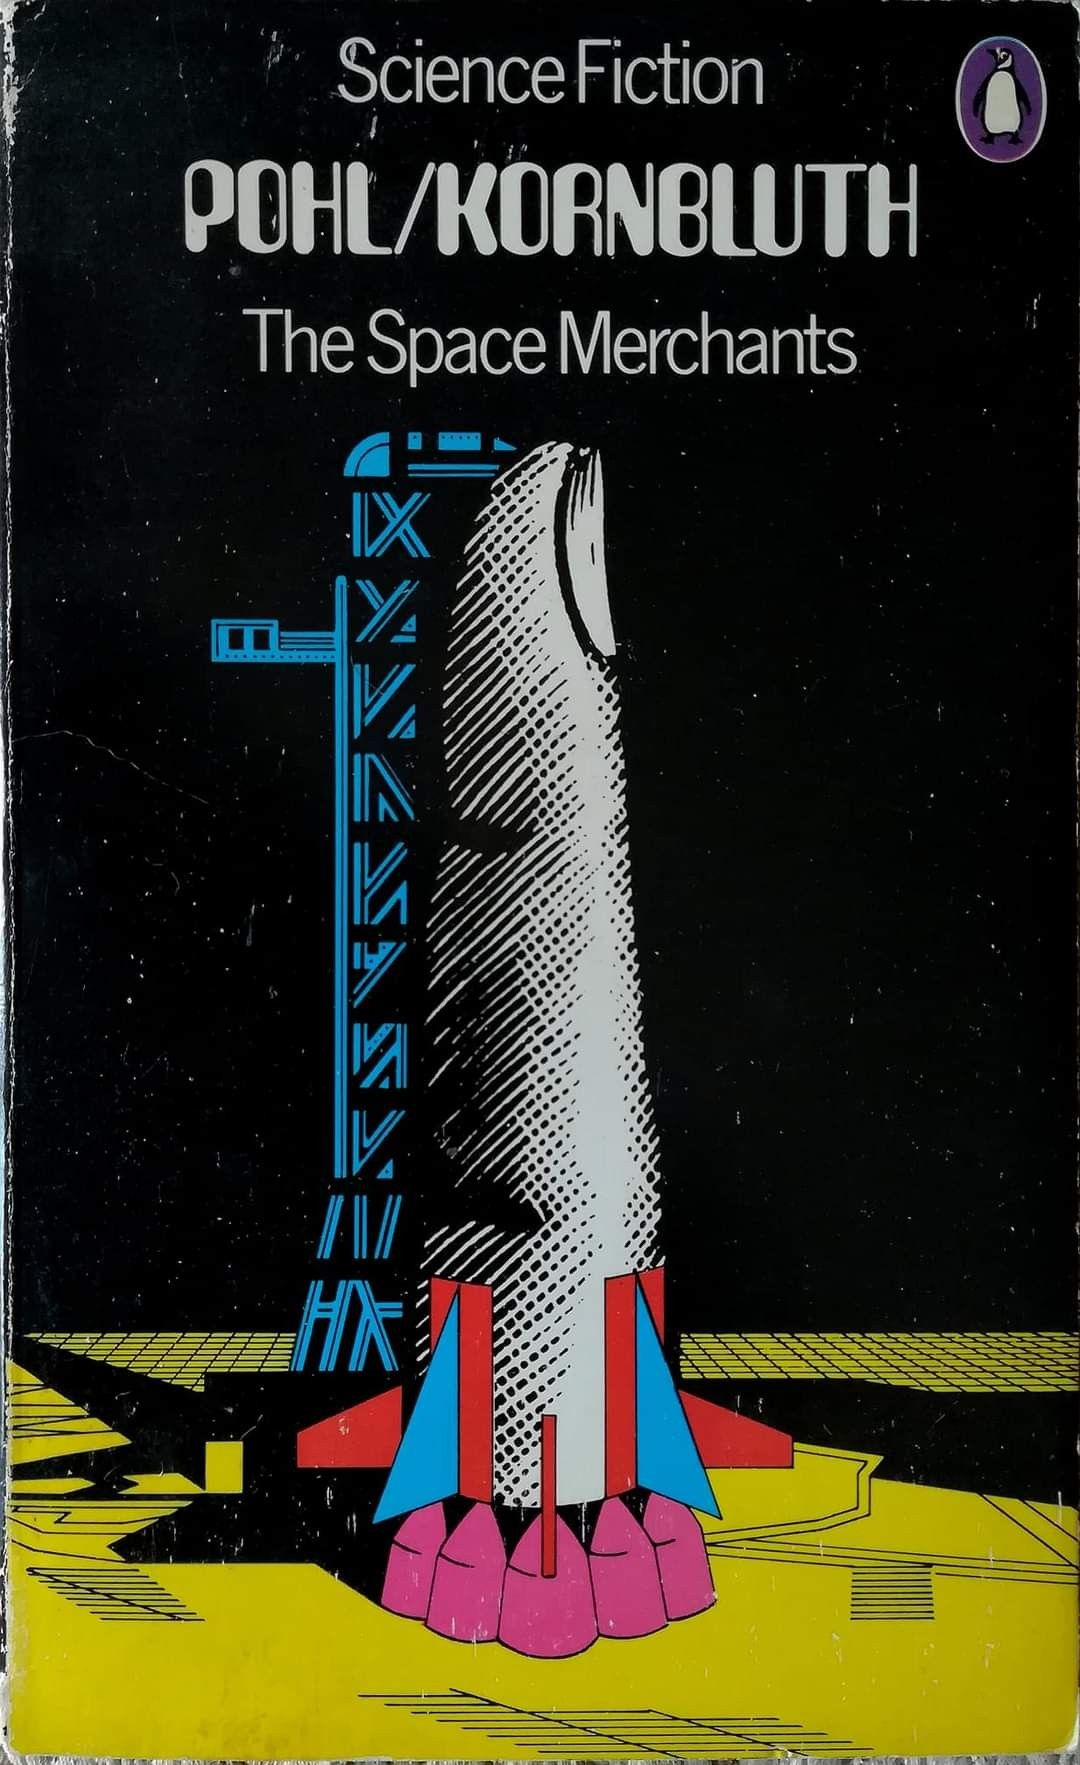 Pin By Stevo Provenance On 1 Sci Fi Paperback Covers Science Fiction Penguin Books Covers Science Fiction Novels